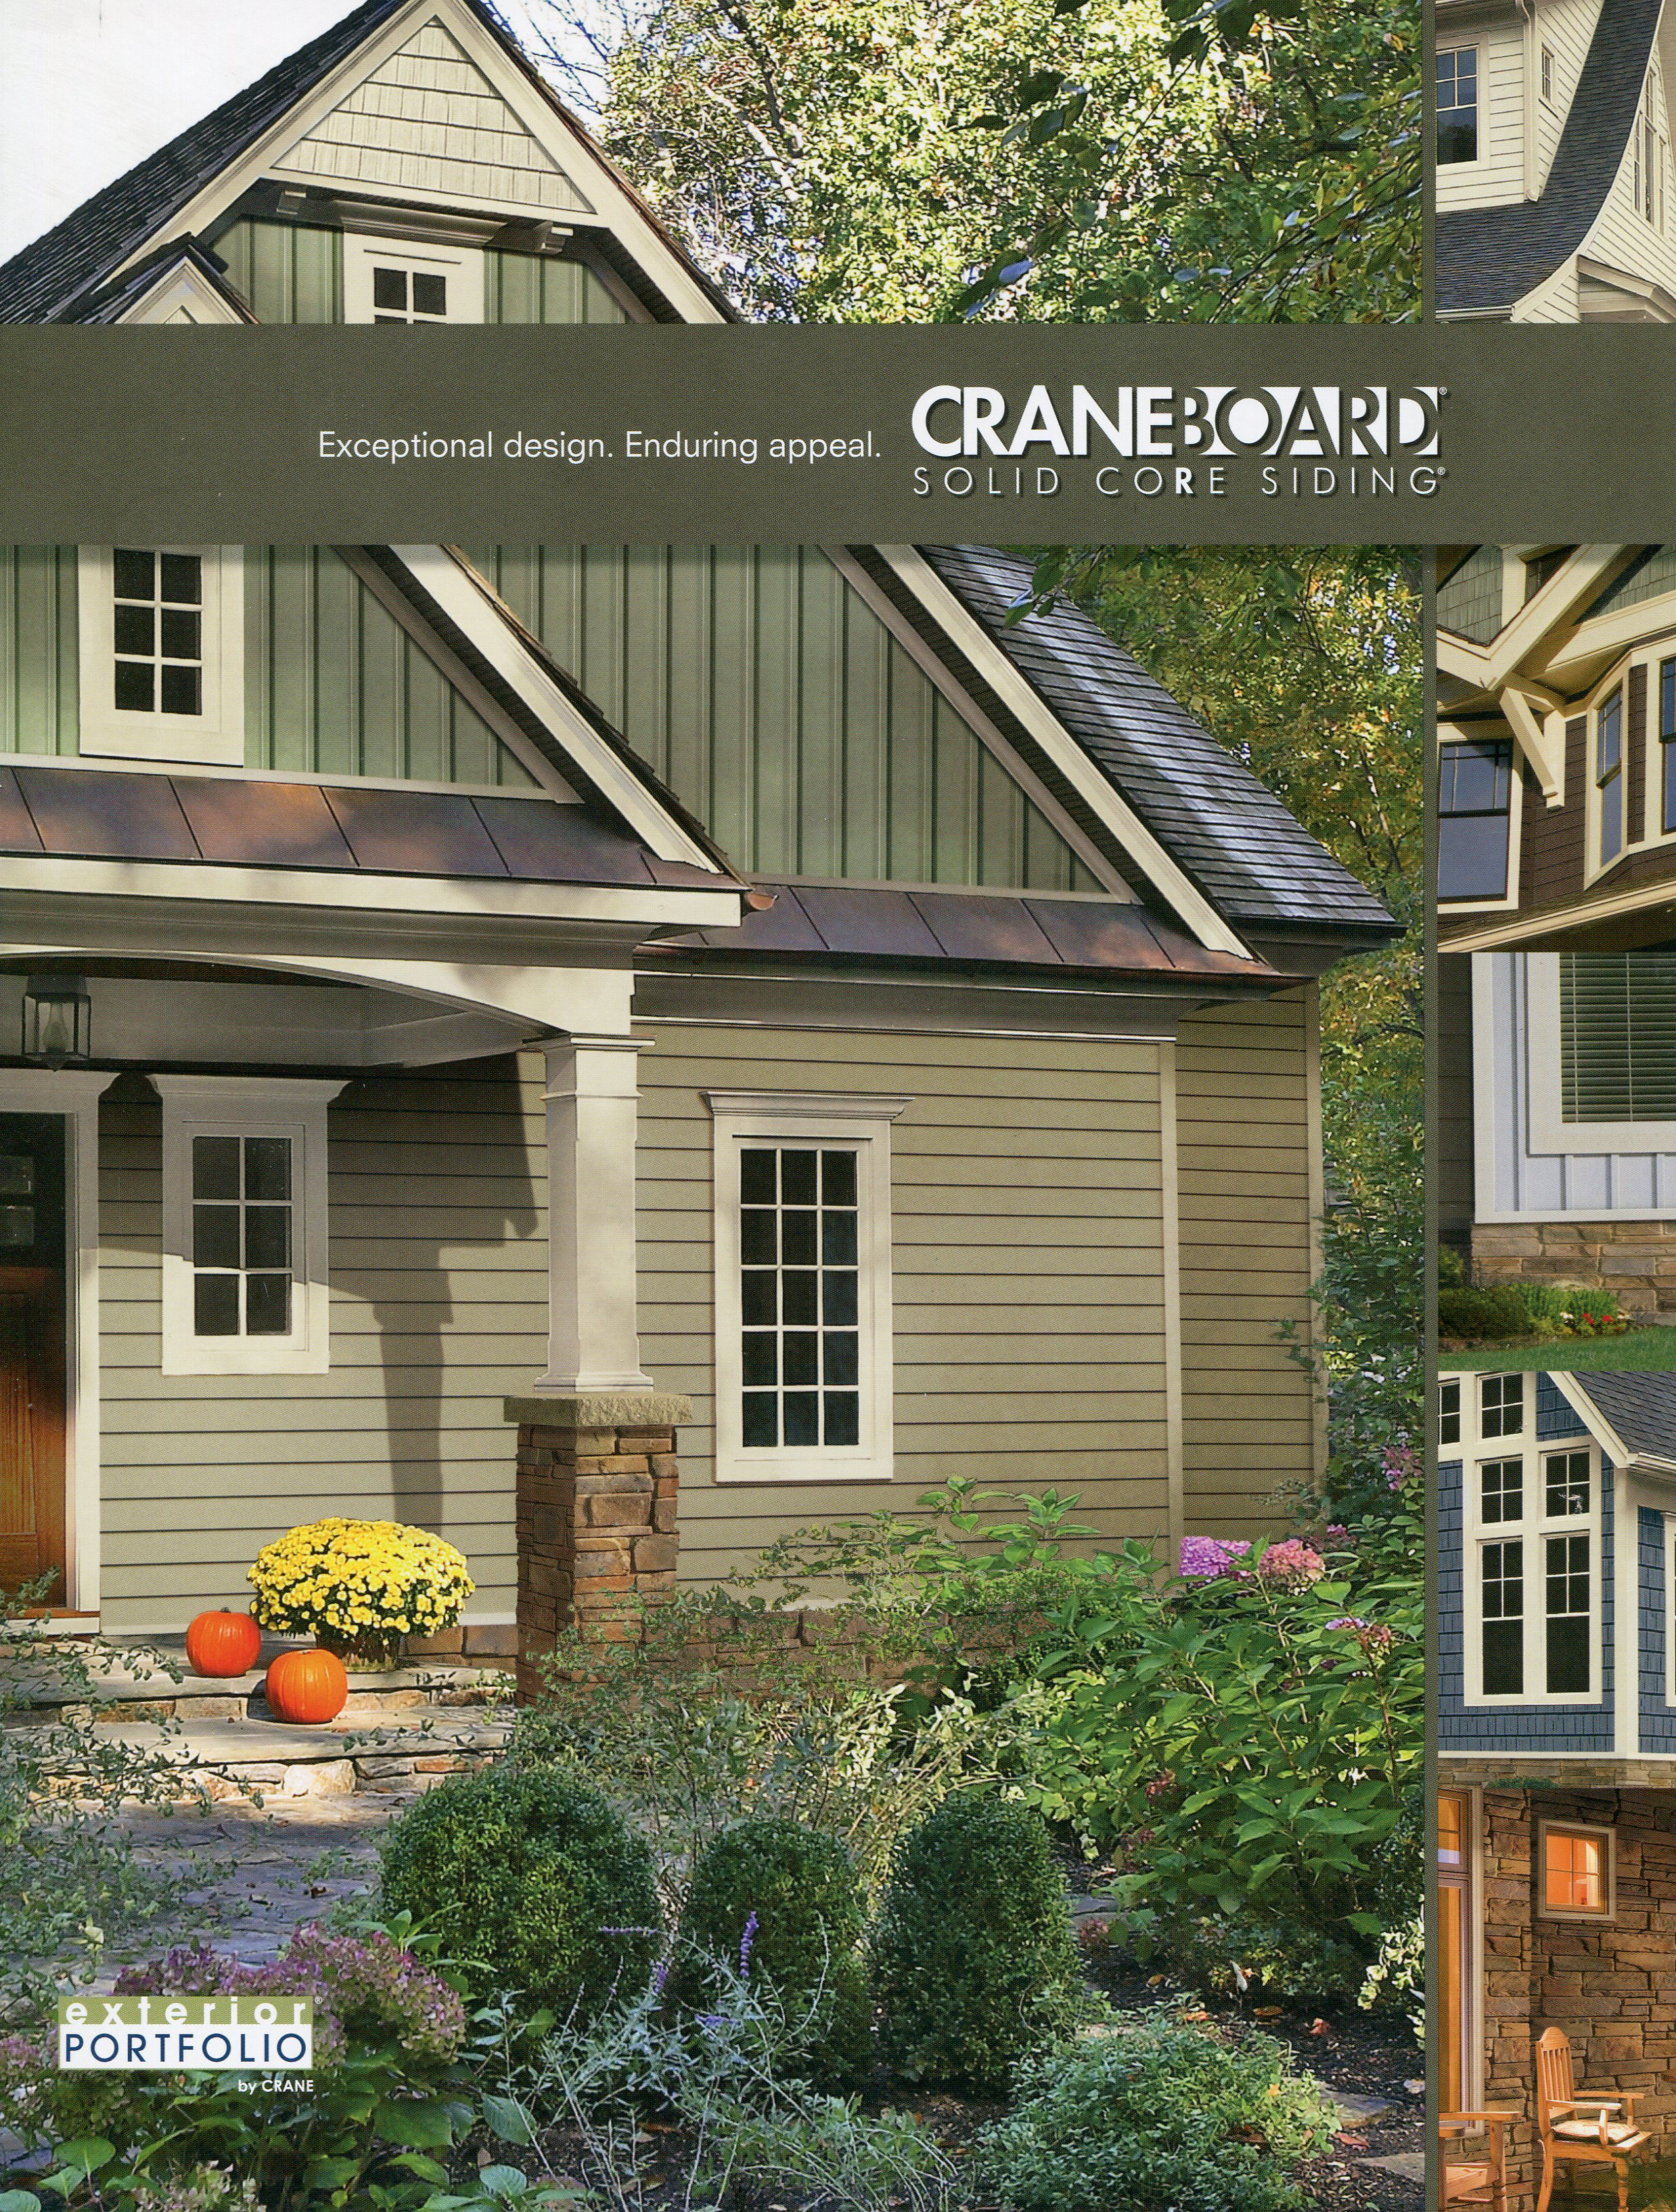 insulated vinyl siding in ma craneboard by crane franca services. Black Bedroom Furniture Sets. Home Design Ideas